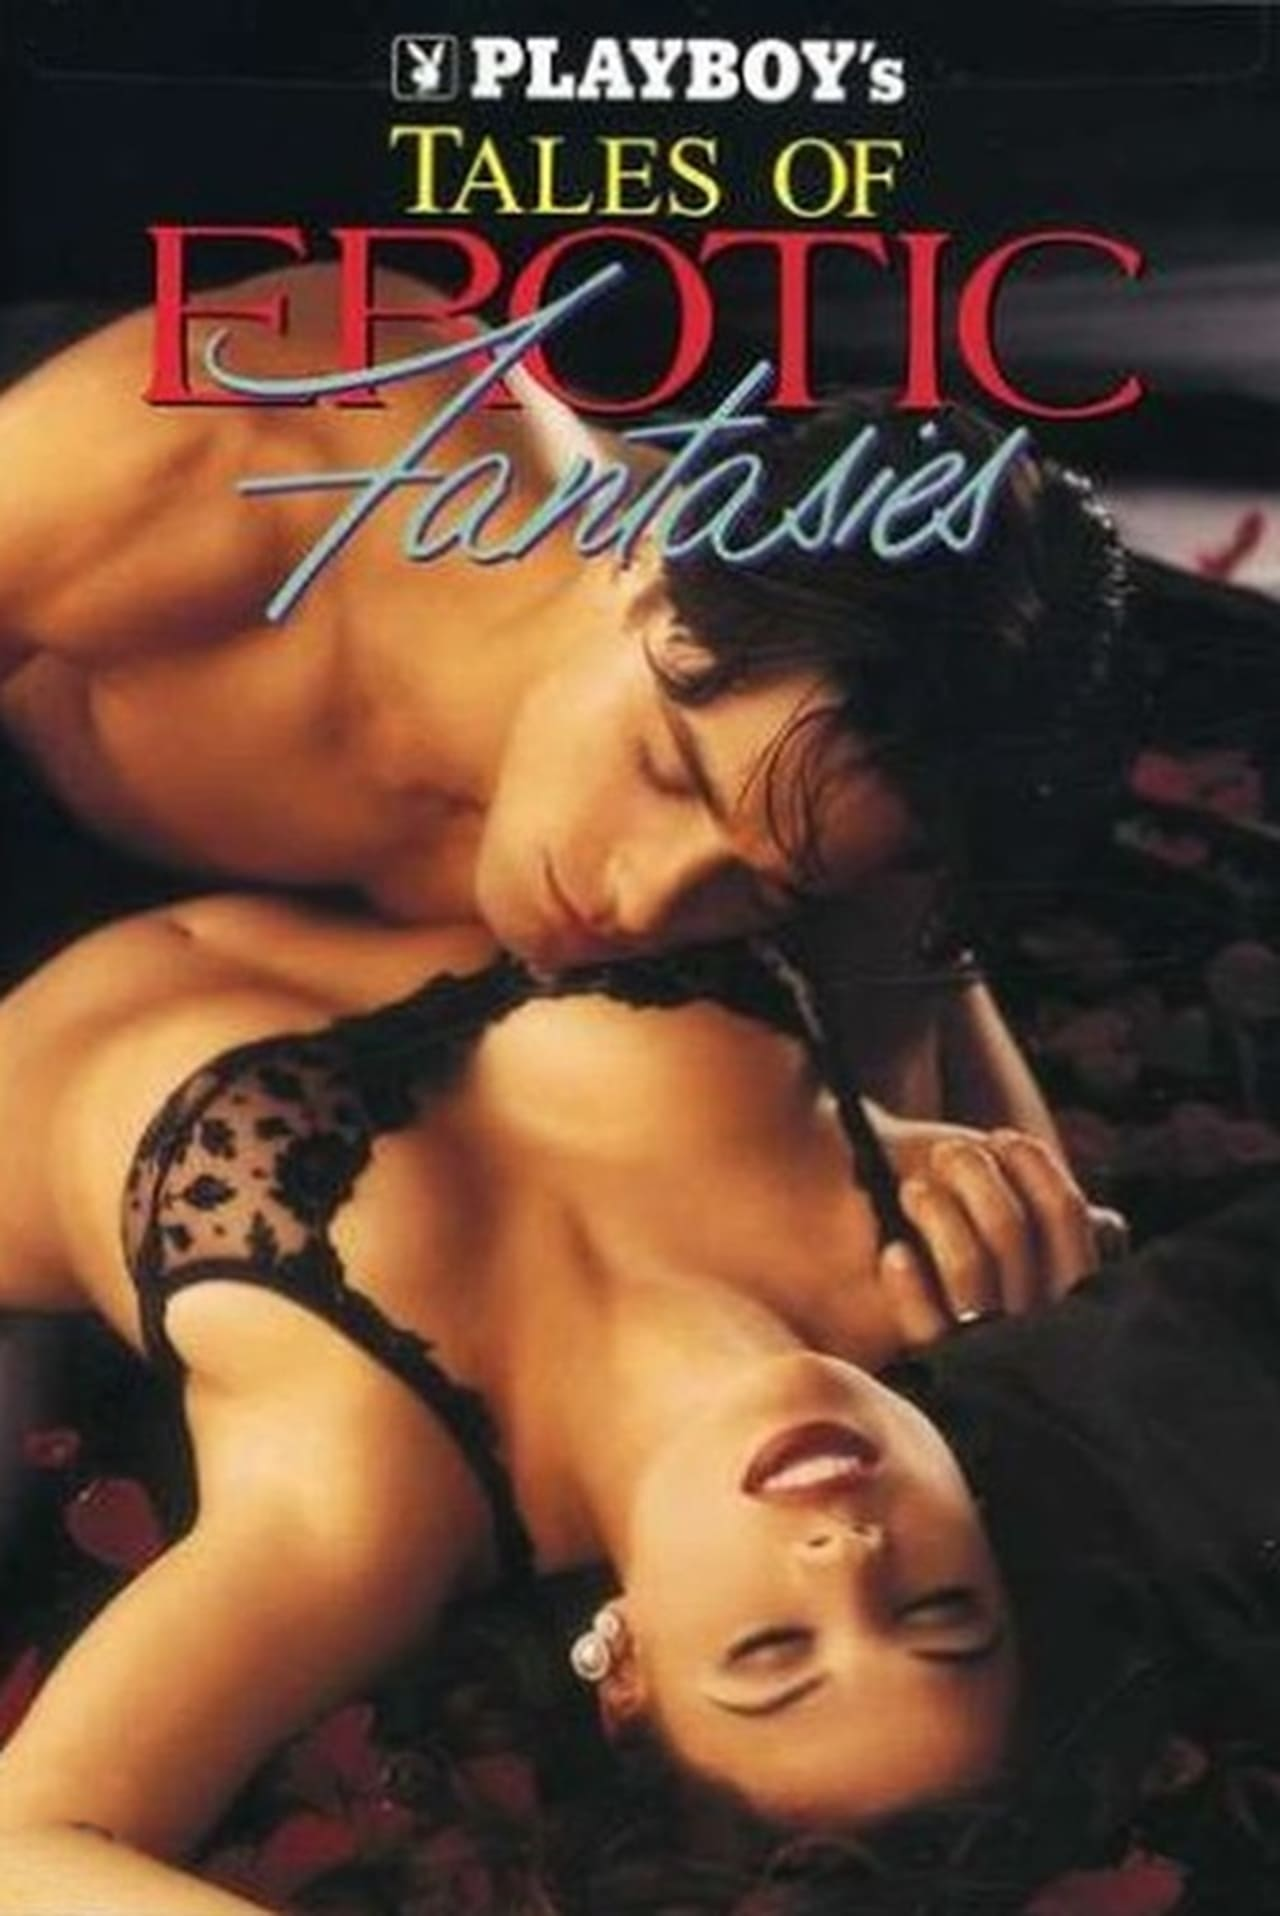 Playboy: Tales of Erotic Fantasies (1999)